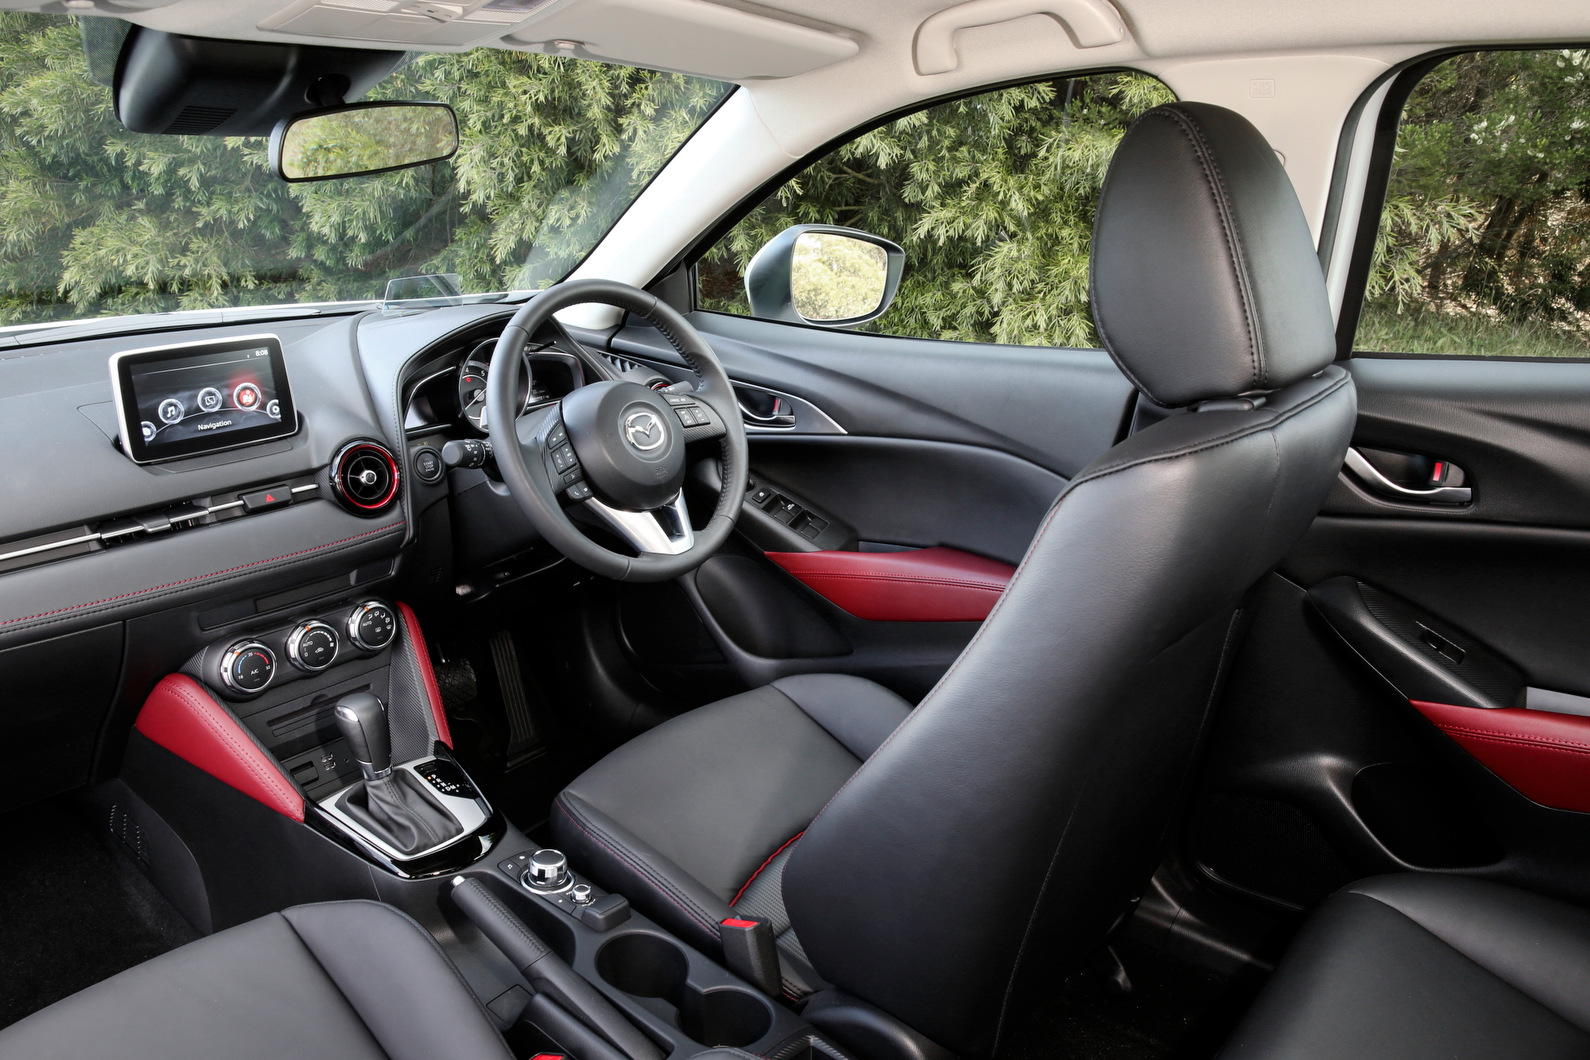 2017 mazda cx 3 grand touring review australia cars for you - 2017 Mazda Cx 3 Grand Touring Review Australia Cars For You 84